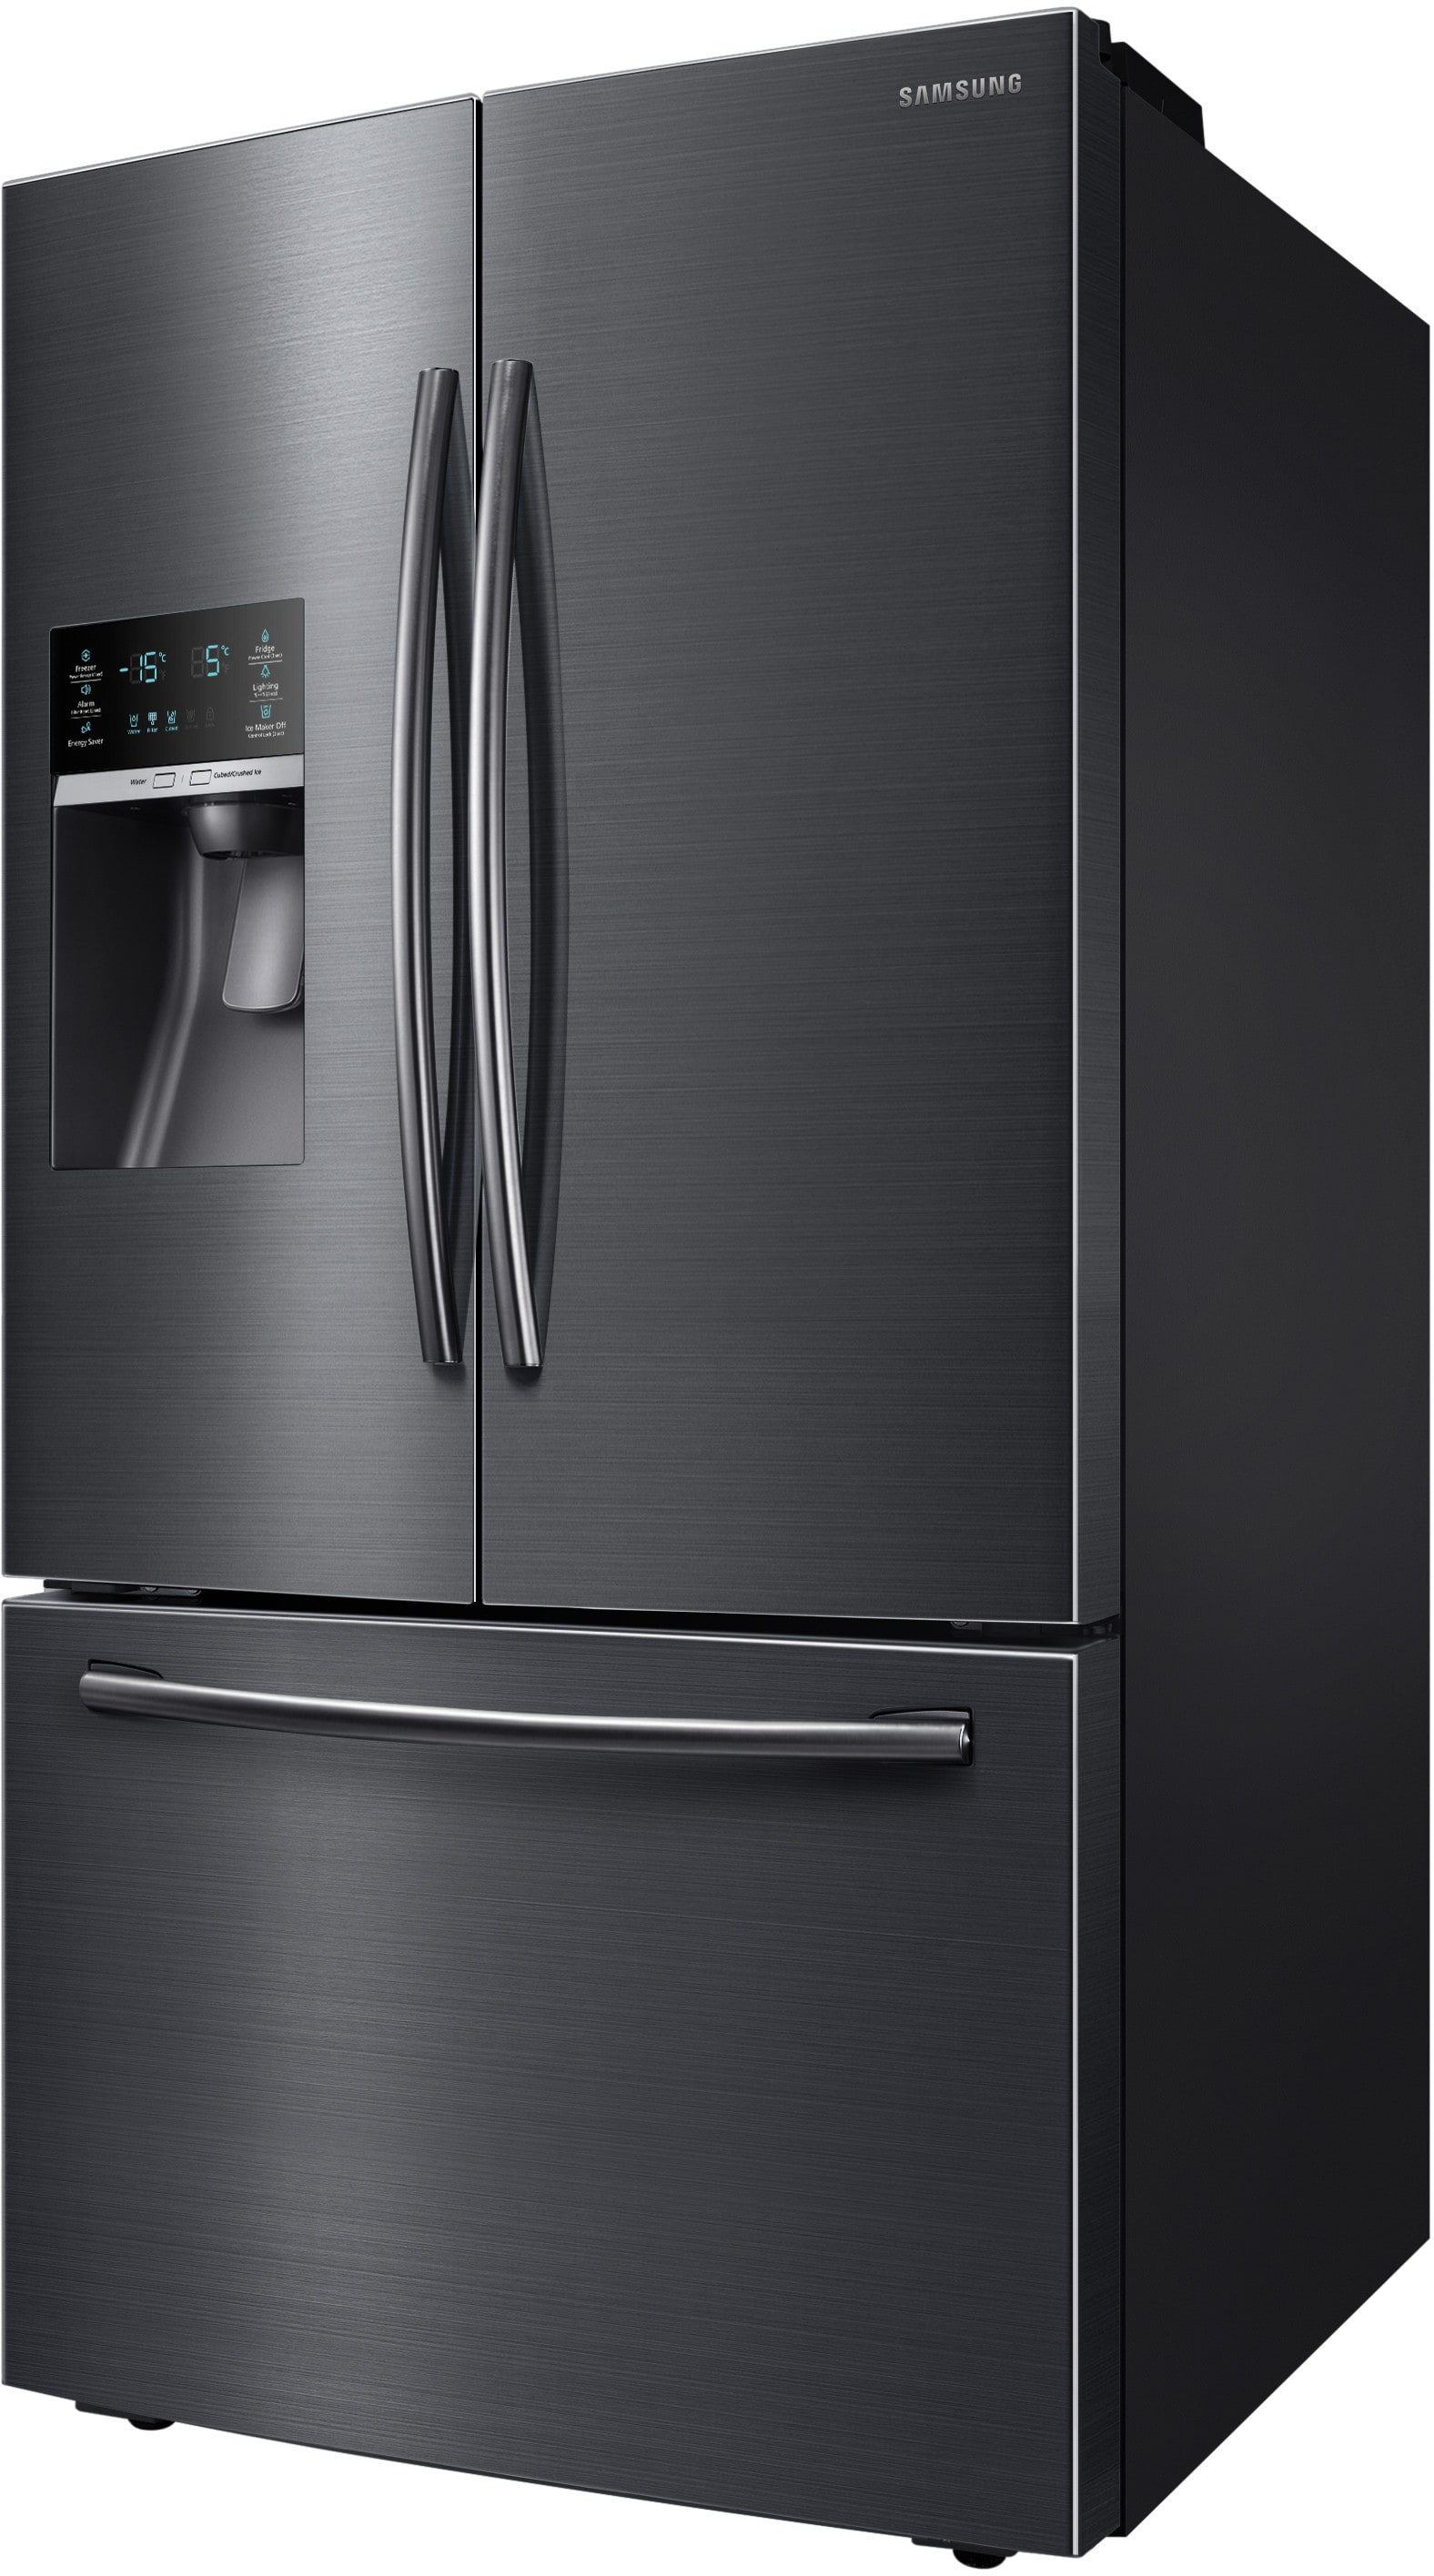 Samsung Rf28hfedbsg 36 Inch French Door Refrigerator With